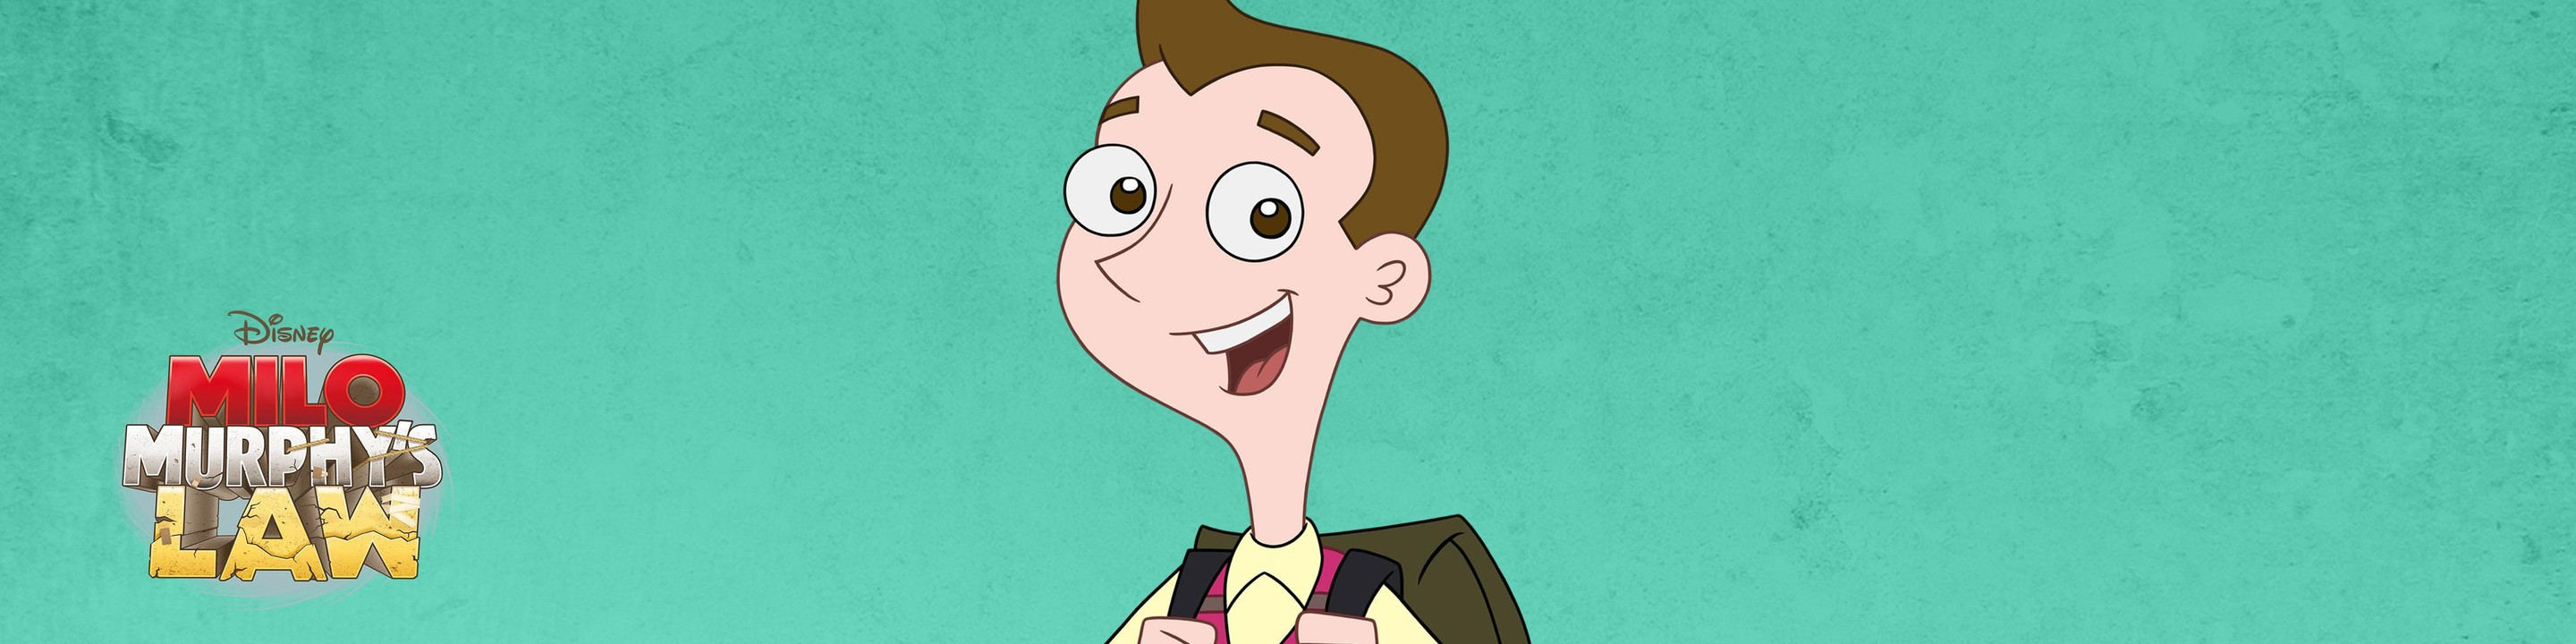 Watch Milo Murphy's Law TV Show | Disney Channel on DisneyNOW